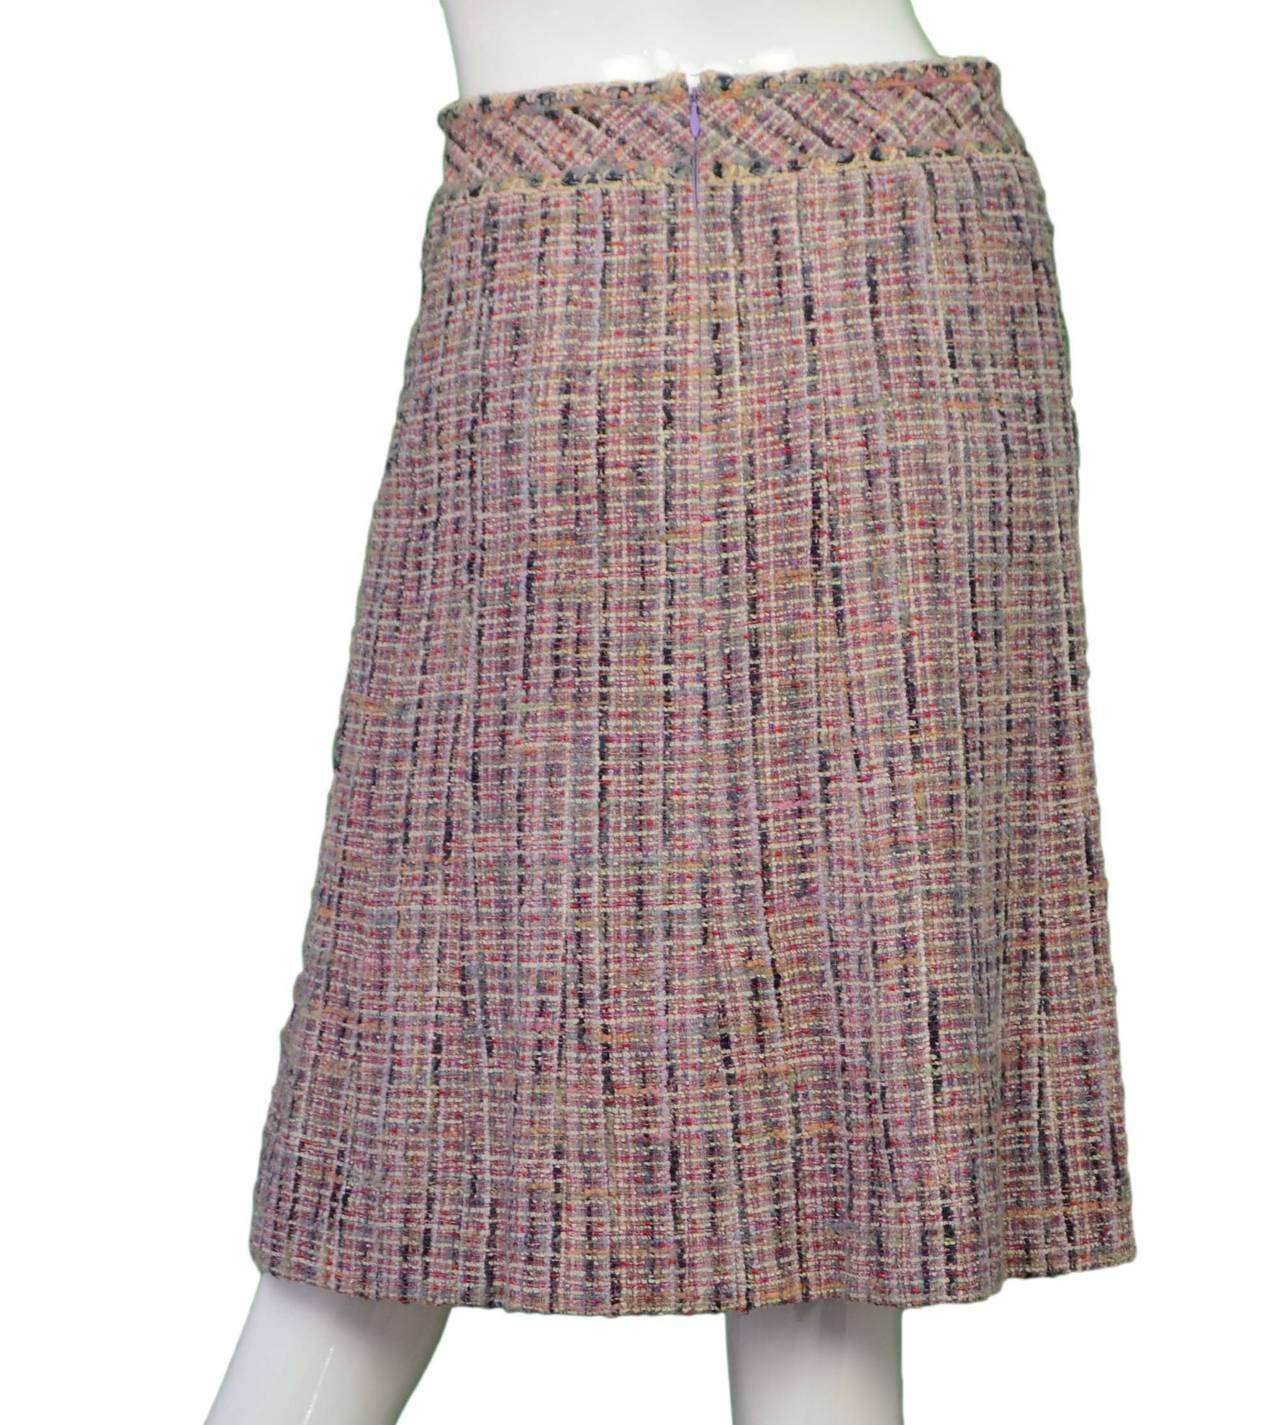 chanel multi colored tweed a line skirt sz 34 for sale at